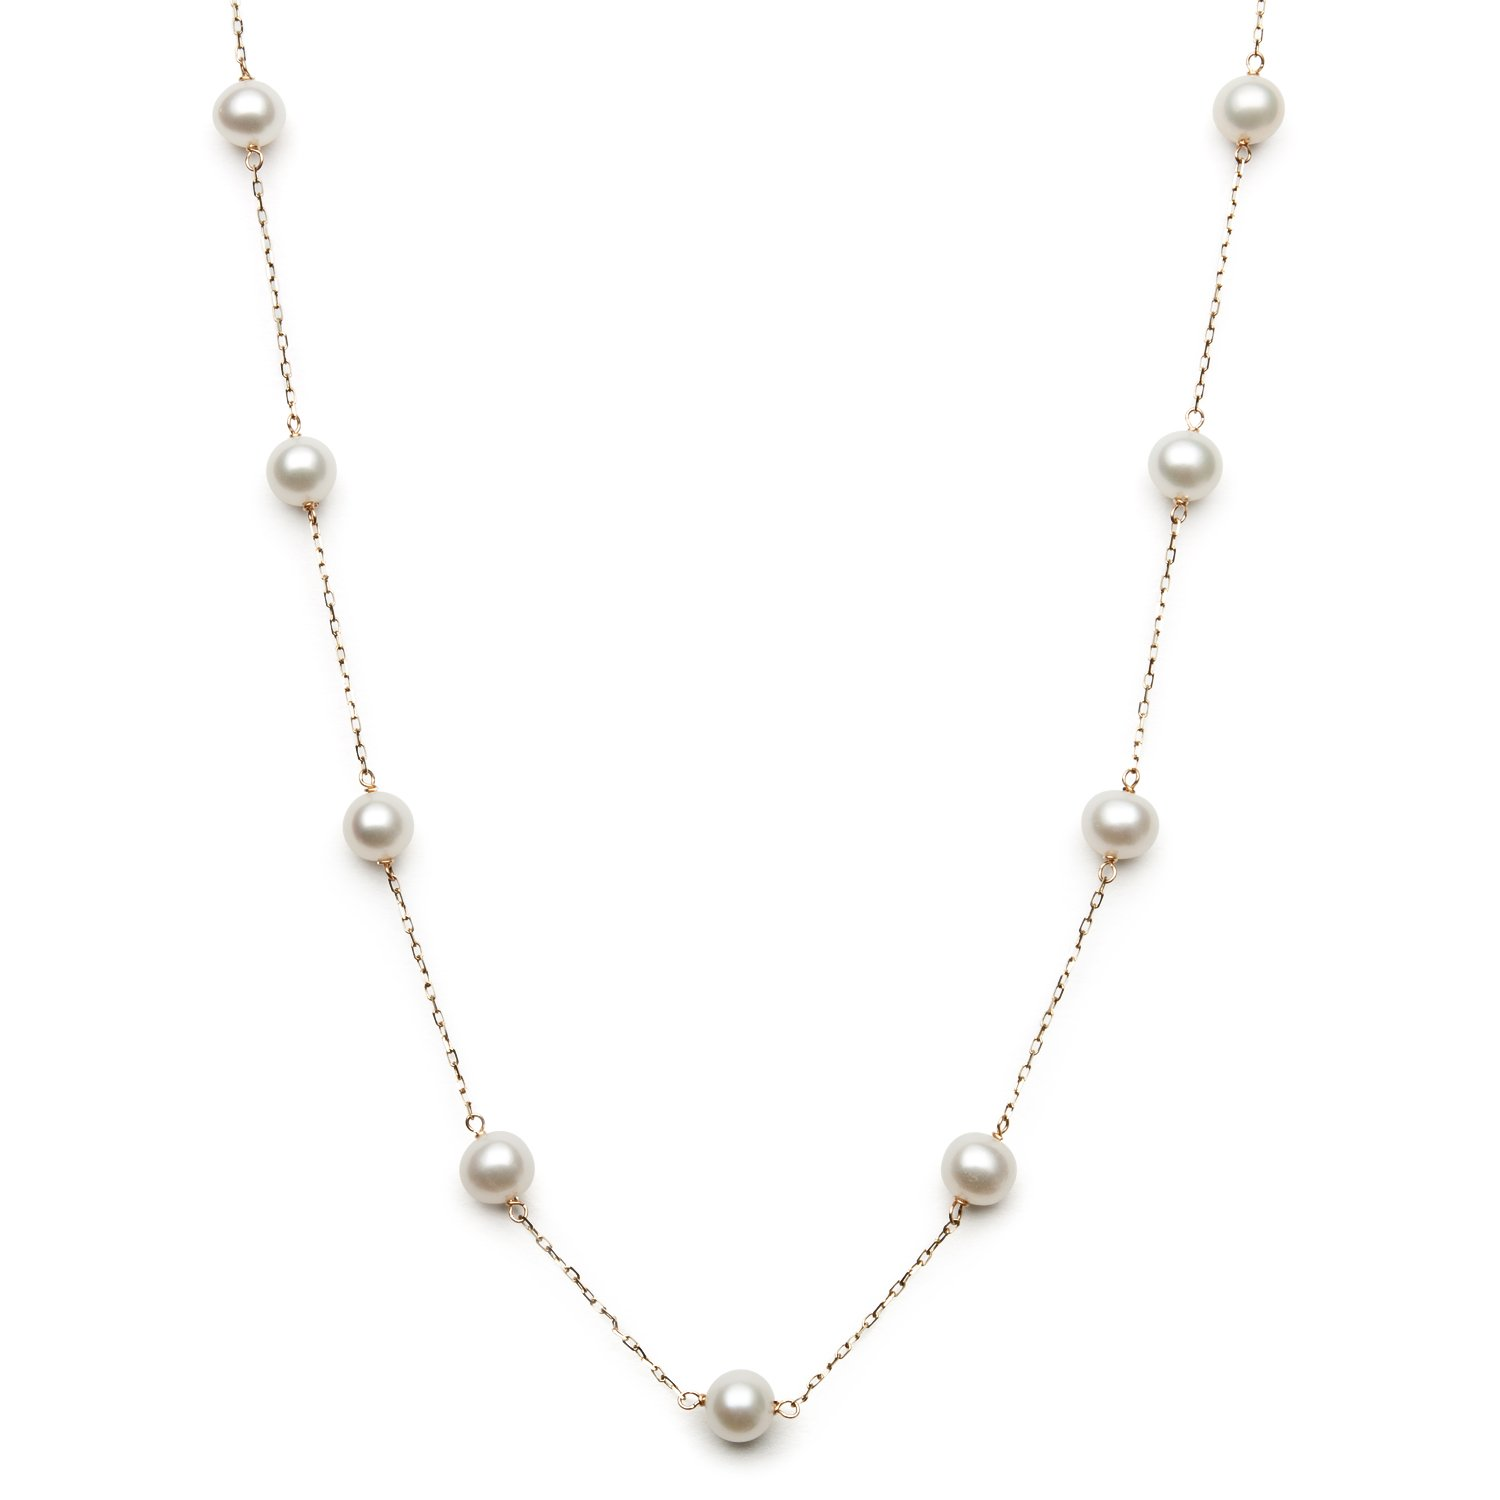 10K Yellow Gold 6-6.5mm Round White Freshwater Pearl 18'' Necklace